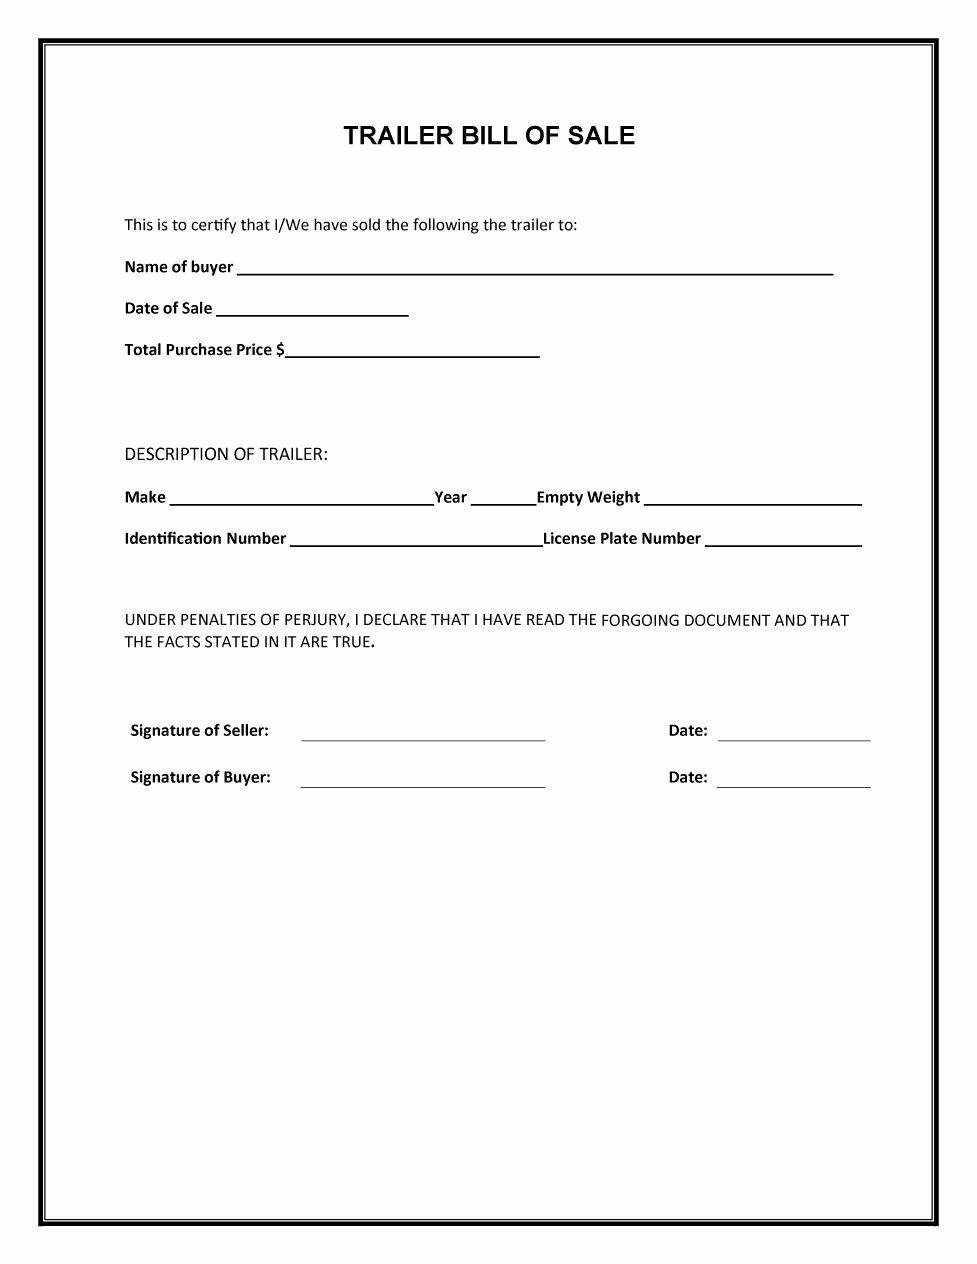 Bill Of Sale form Template Best Of 45 Fee Printable Bill Of Sale Templates Car Boat Gun